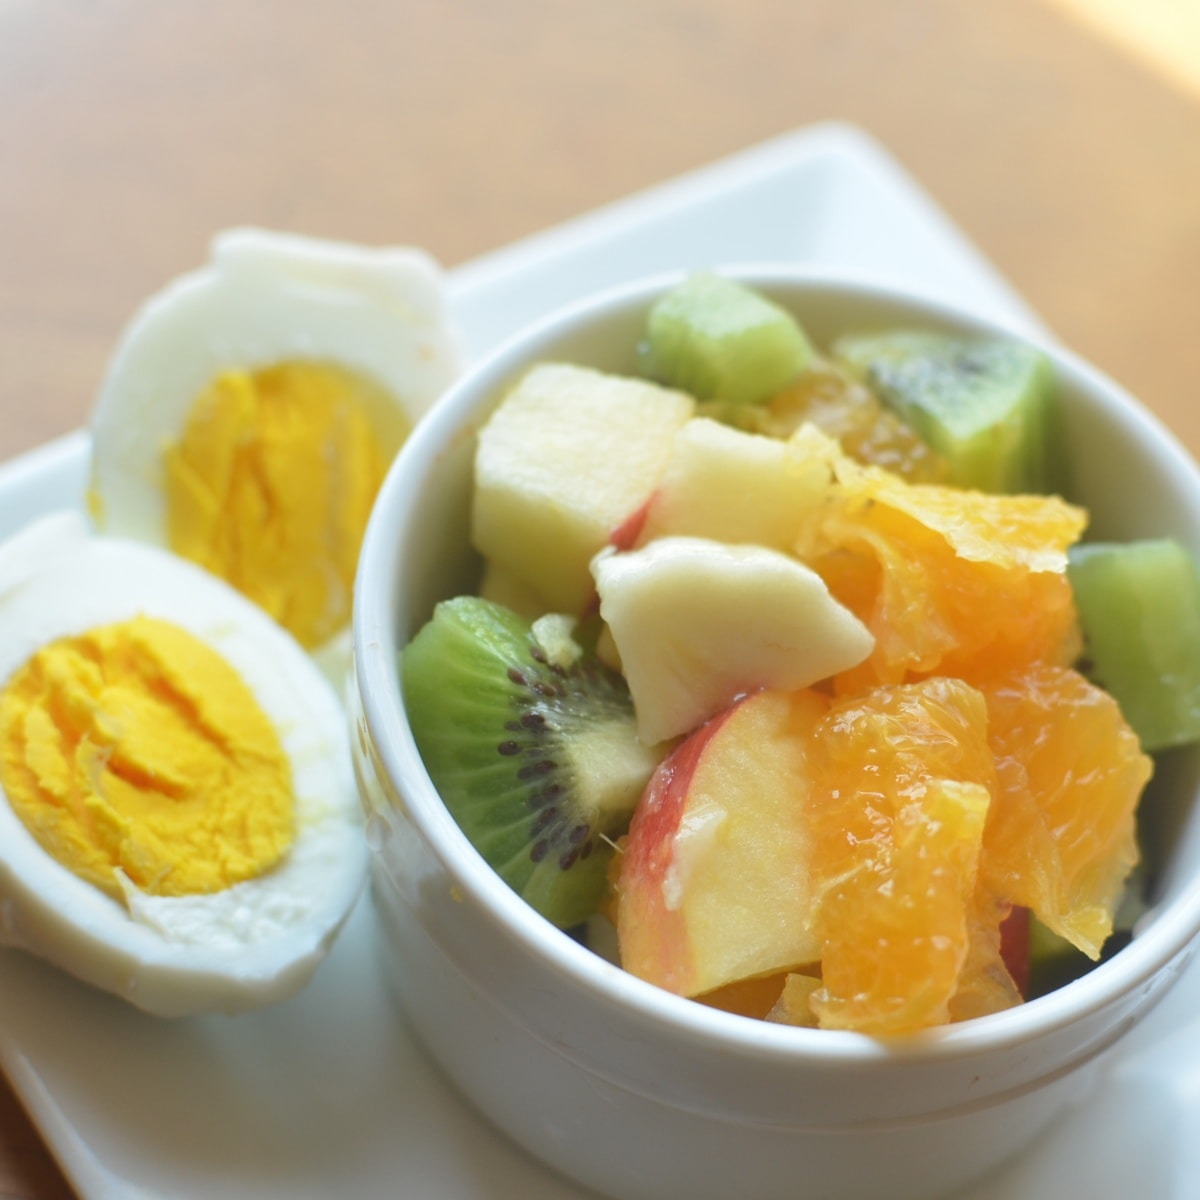 Hard boiled eggs & fruit